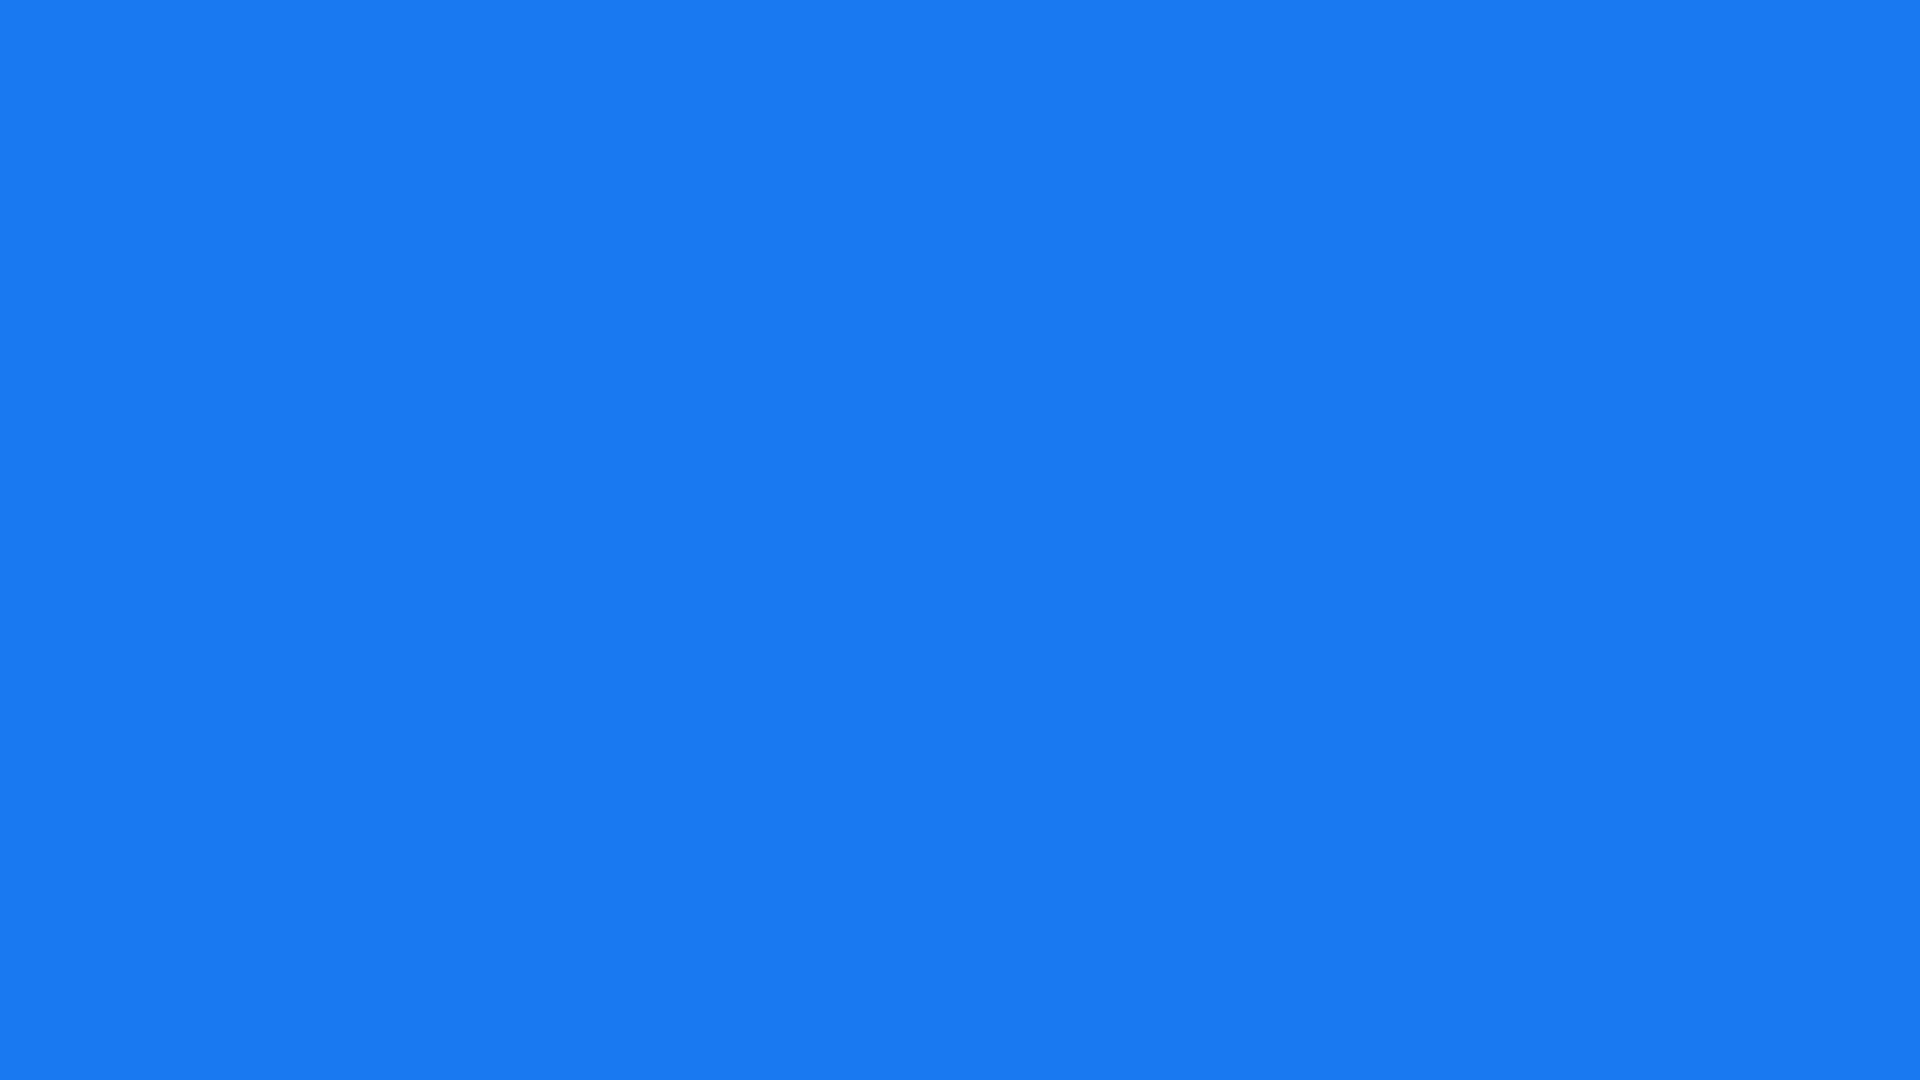 Facebook New Blue Logo Color Scheme » Blue » SchemeColor.com.